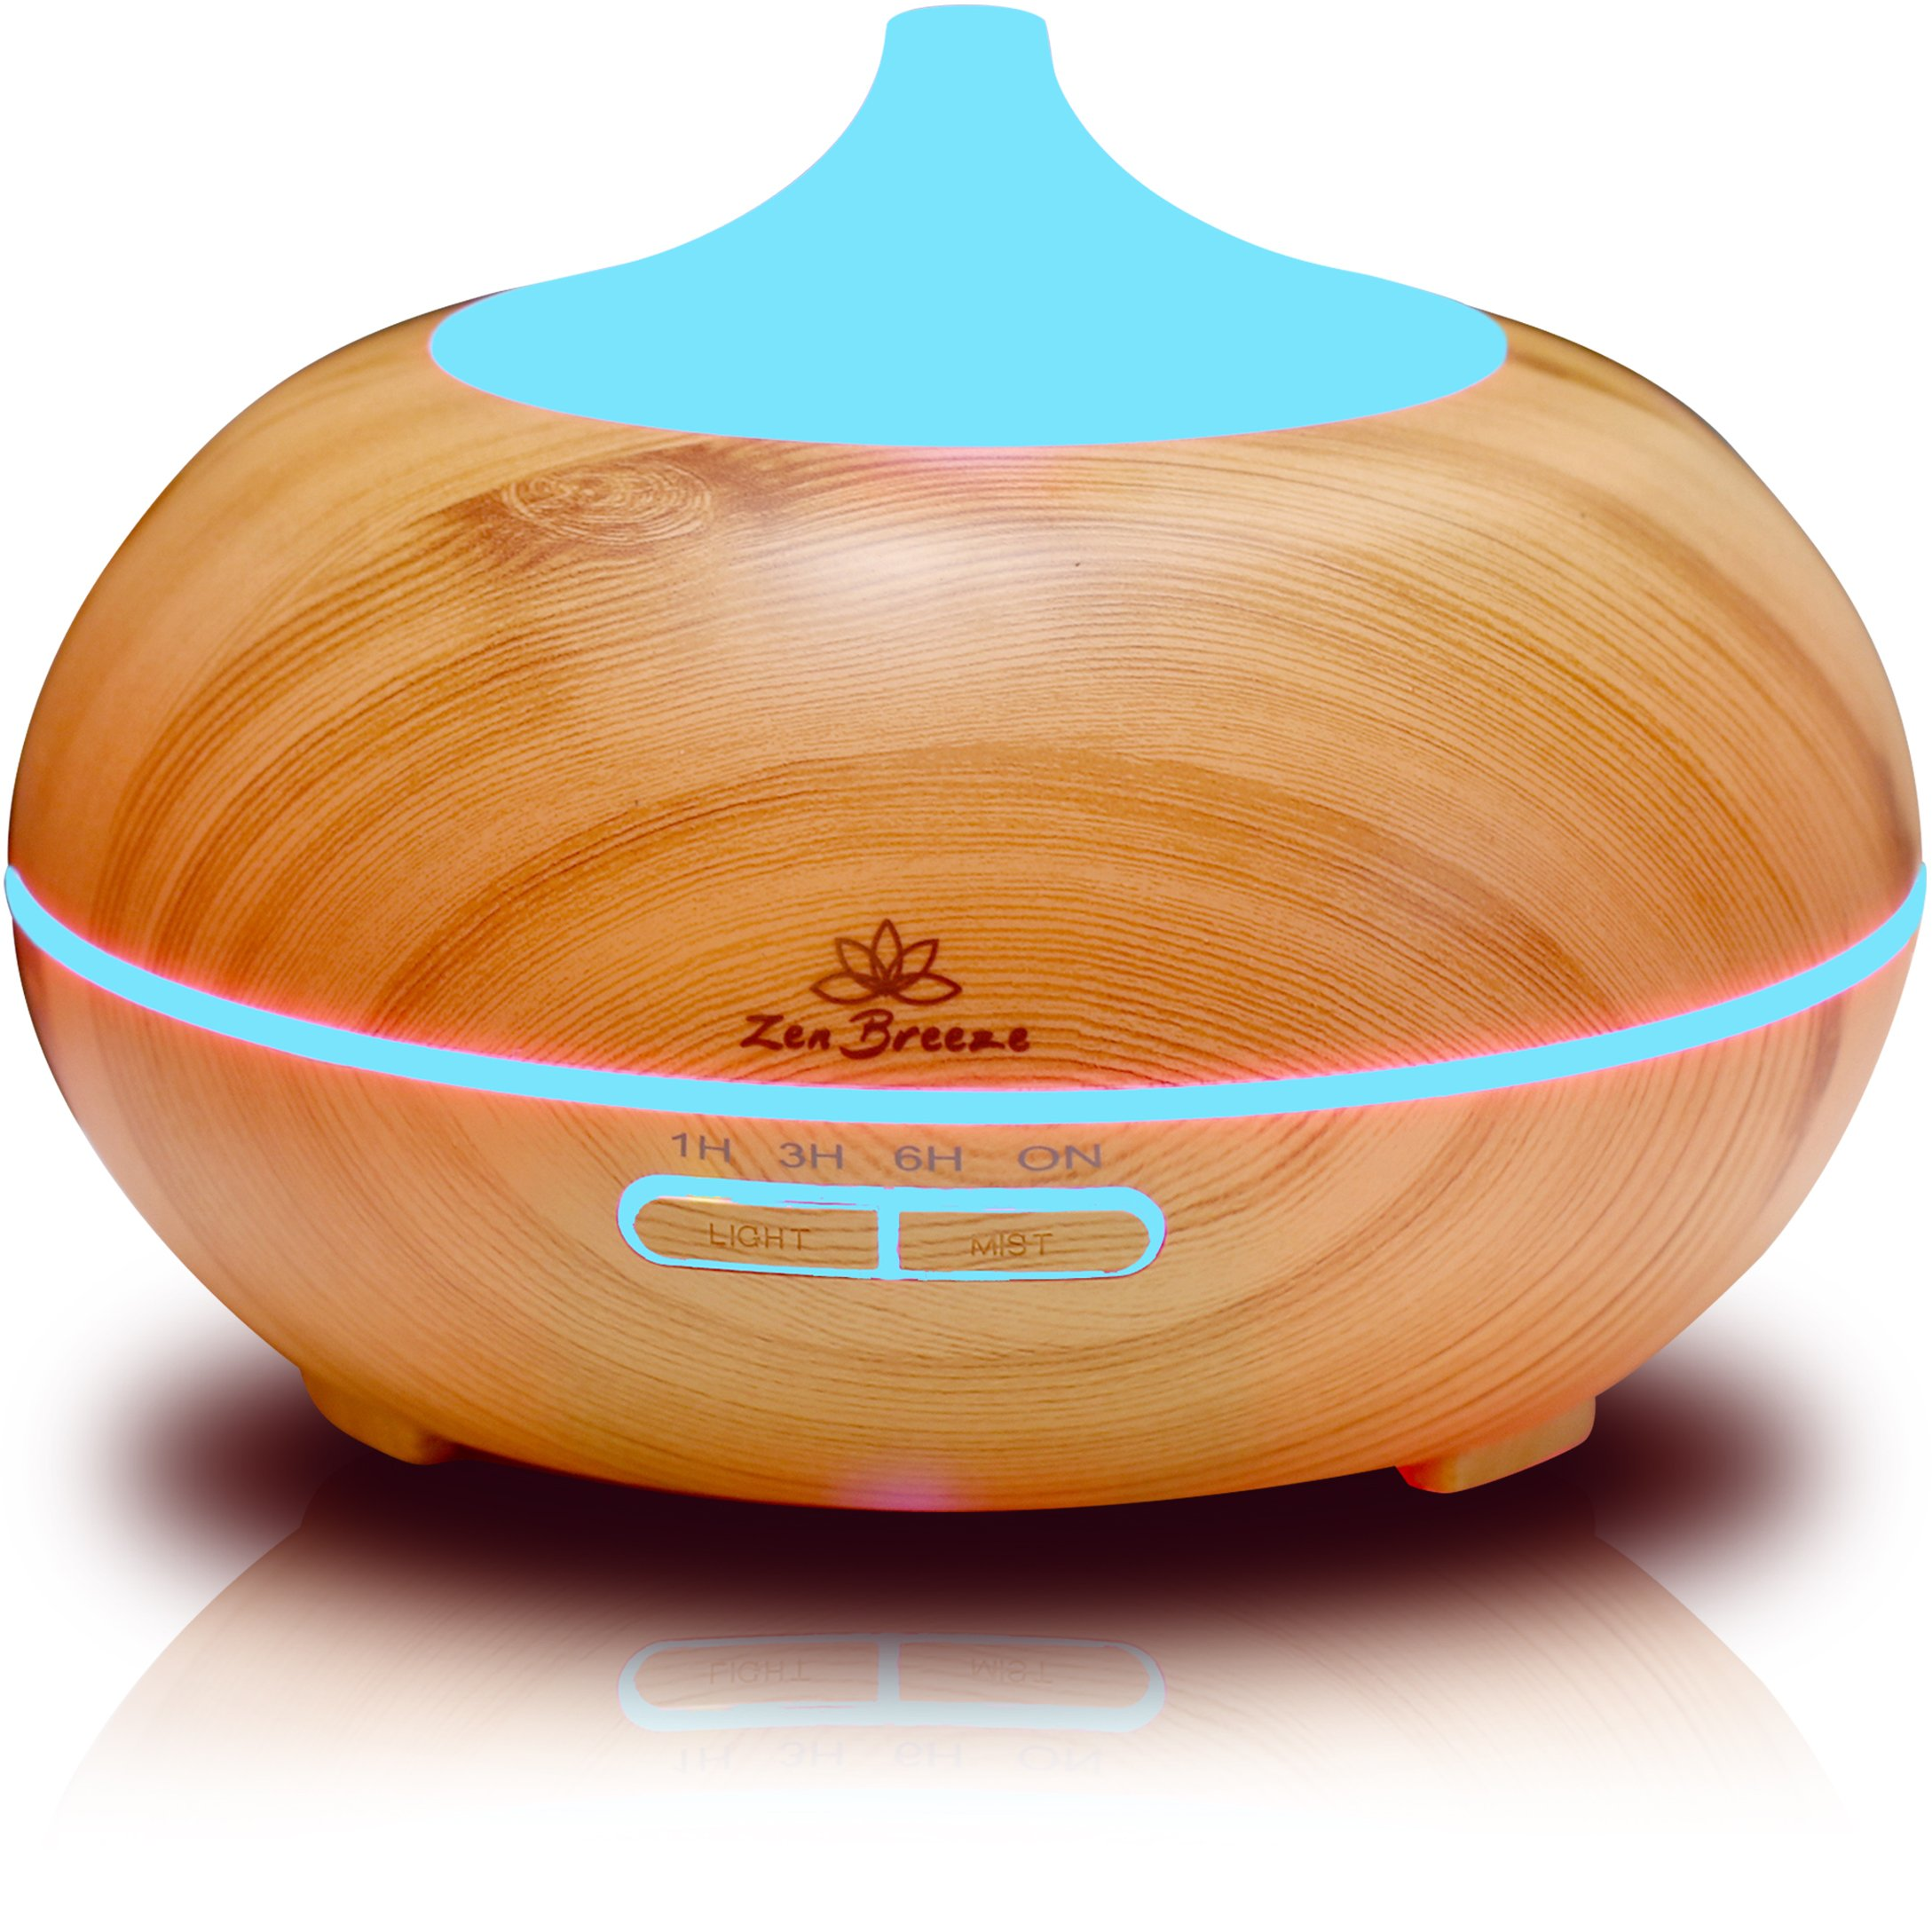 Zen Breeze Essential Oil Diffuser, 2018 Model Aromatherapy Diffuser, 14 Color Night Light, Best Wood Grain, Housewarming Gift Ideas, Wedding & Birthday Gifts Edition